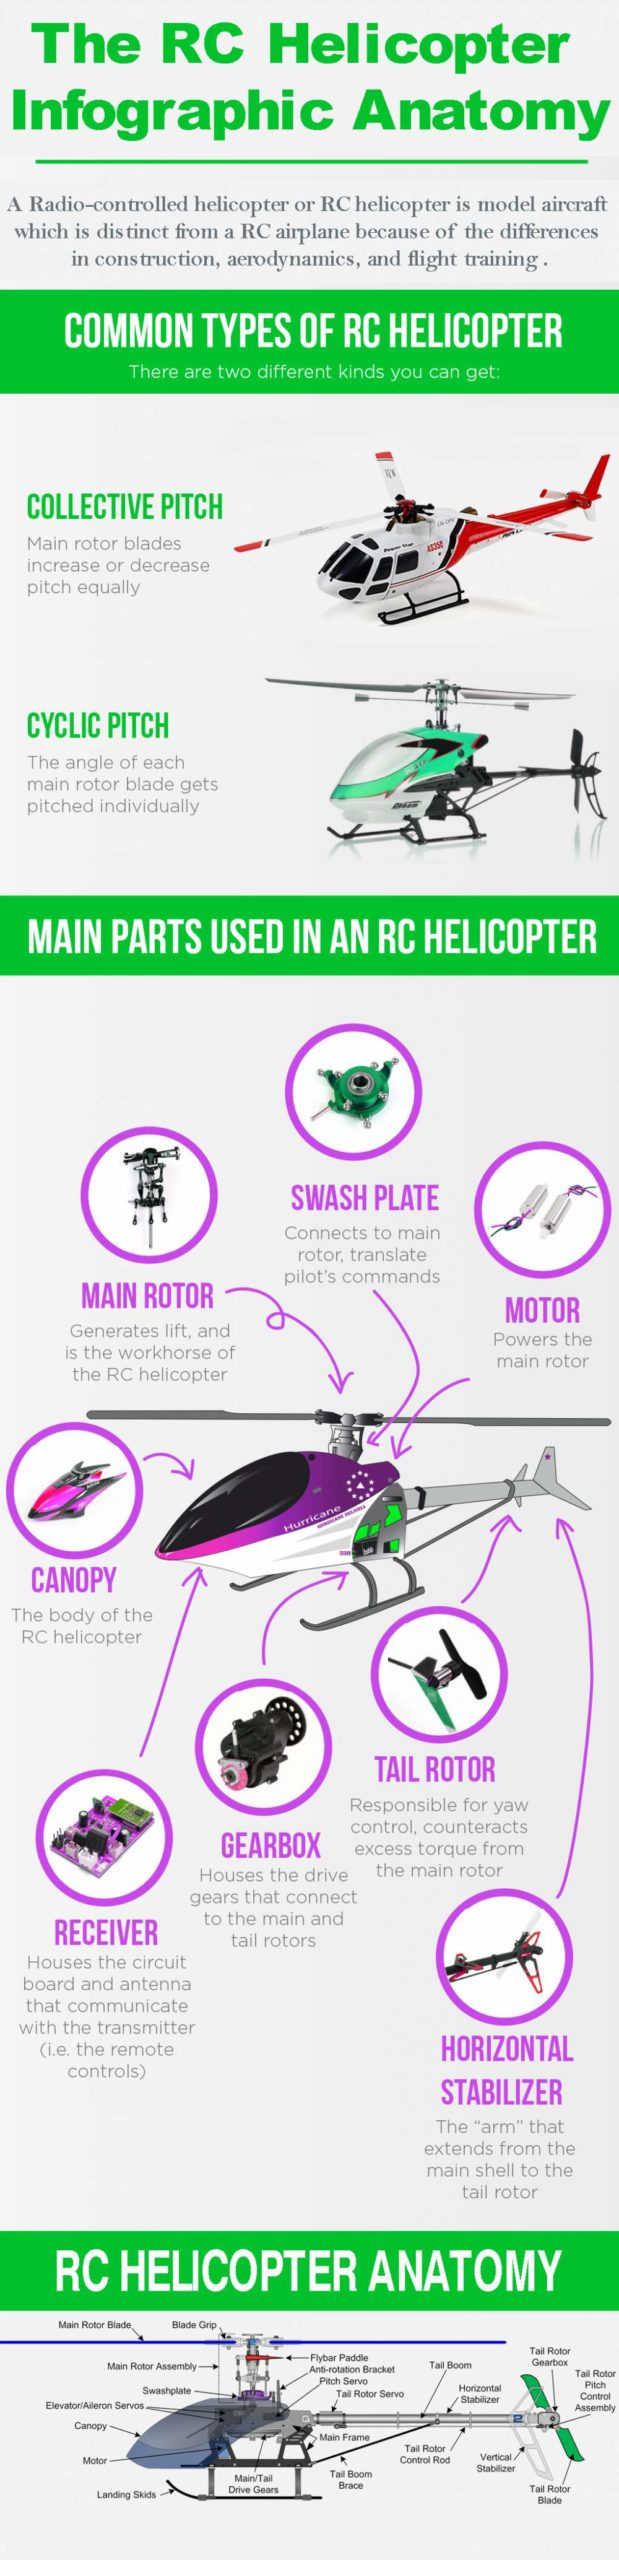 RC-Helicopter-Anatomy